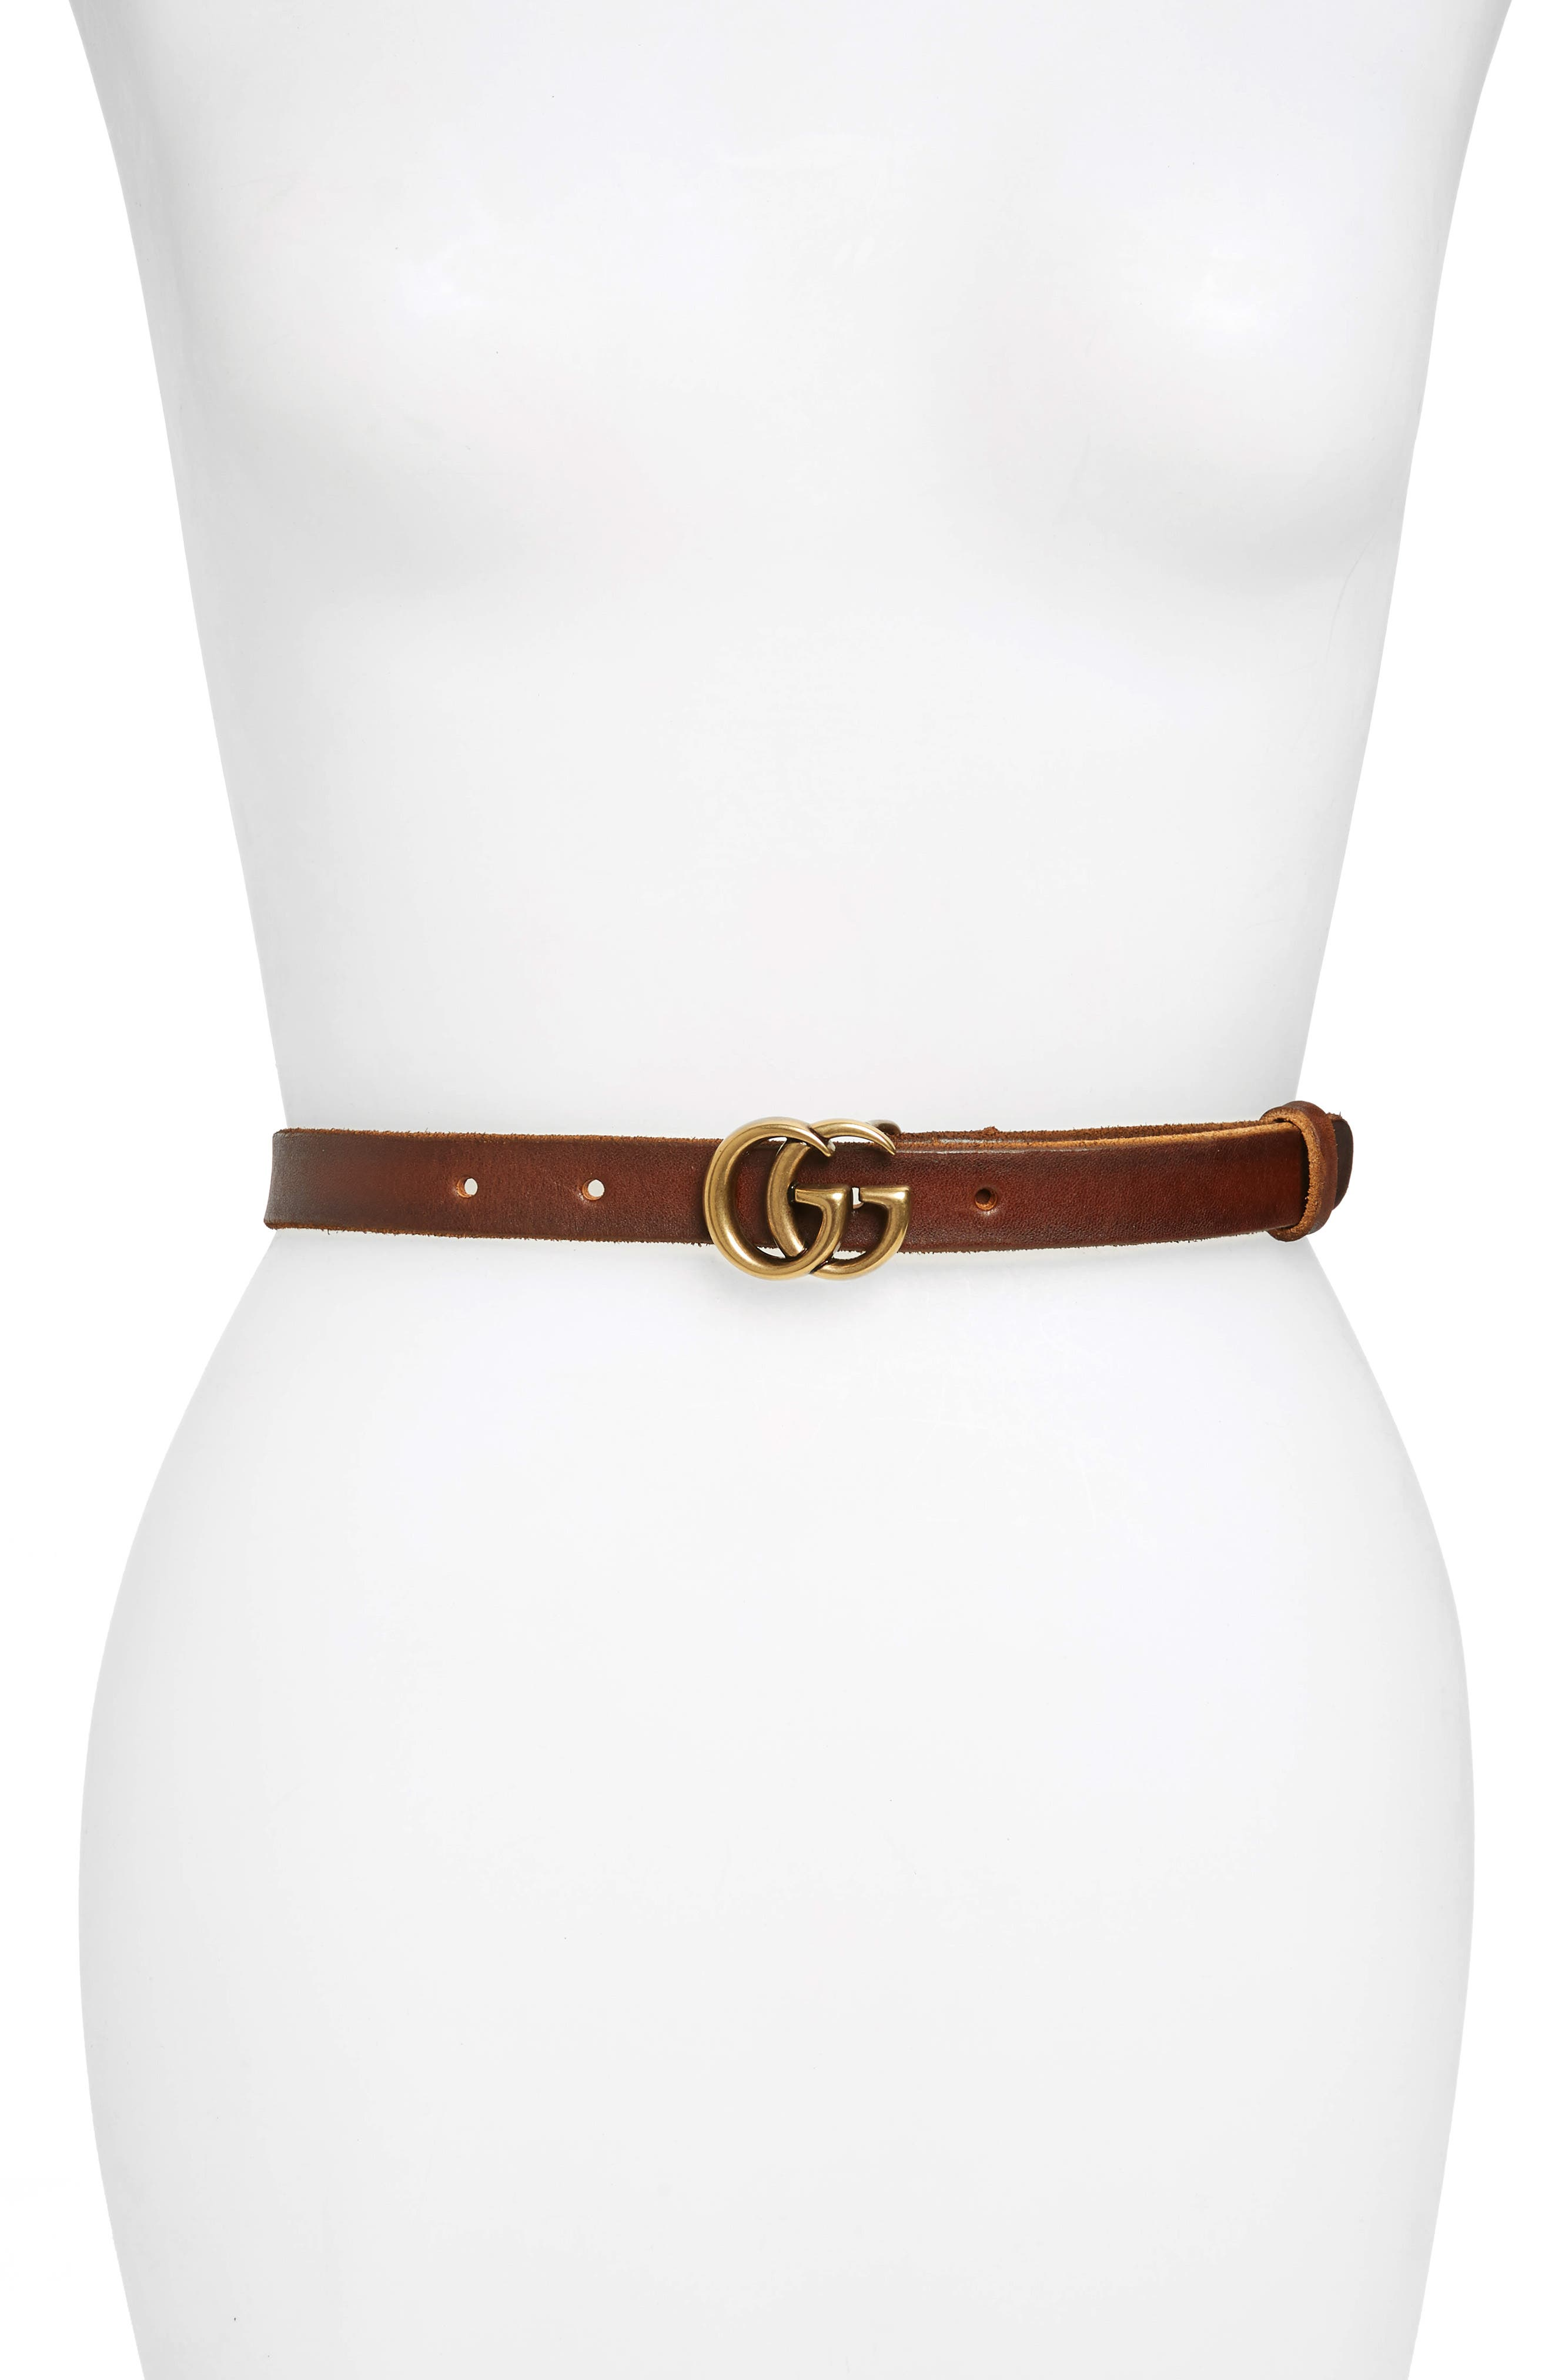 GUCCI, Leather Belt, Main thumbnail 1, color, CUIR